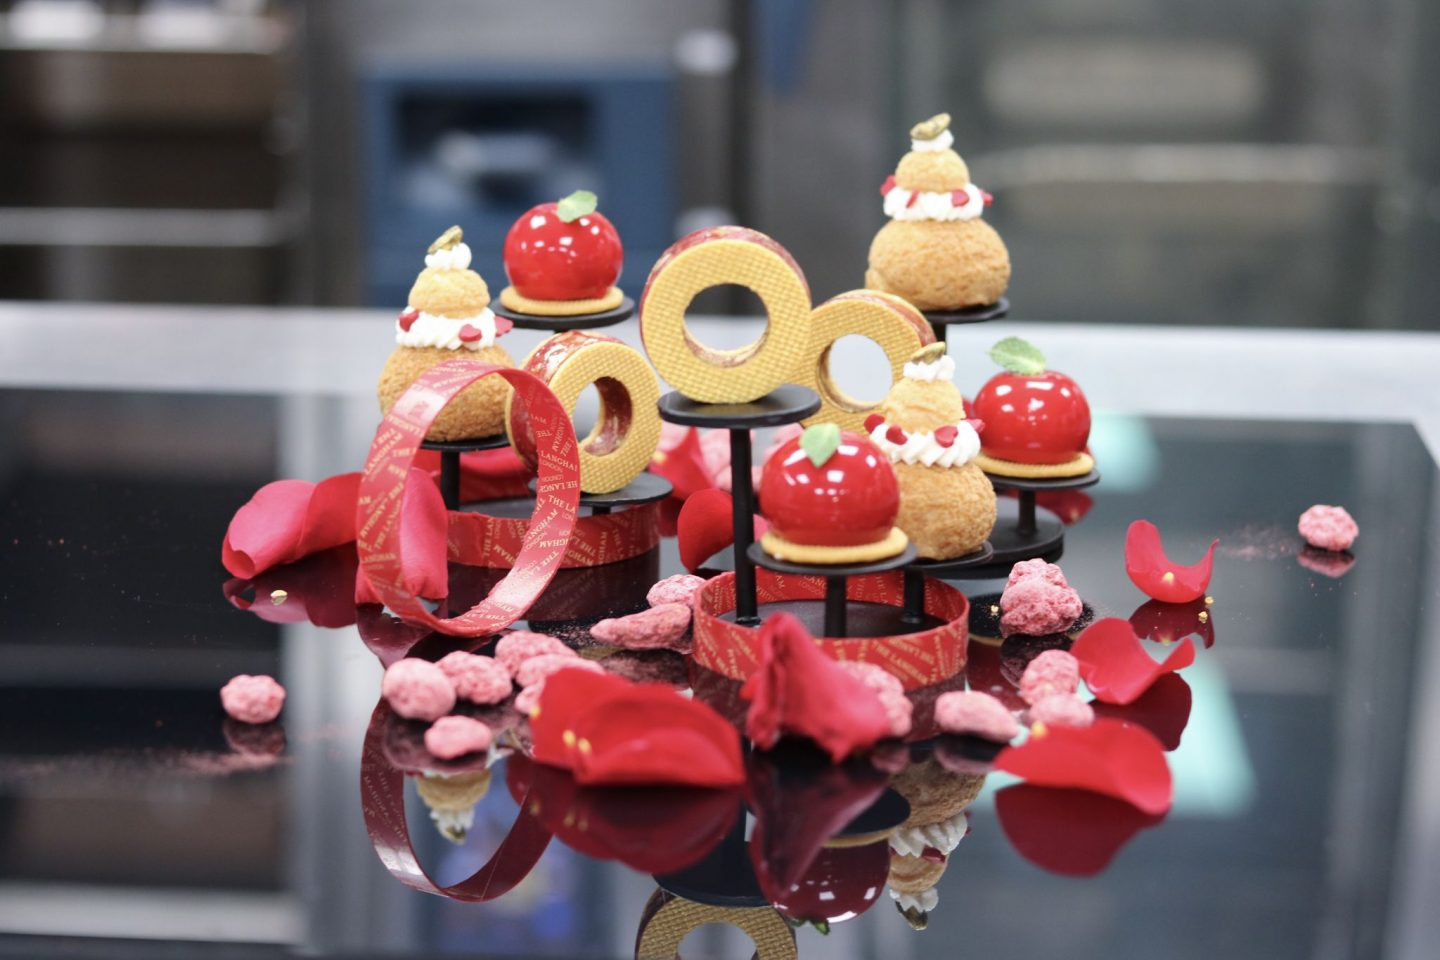 The Valentine's Day Afternoon Tea at The Langham, London